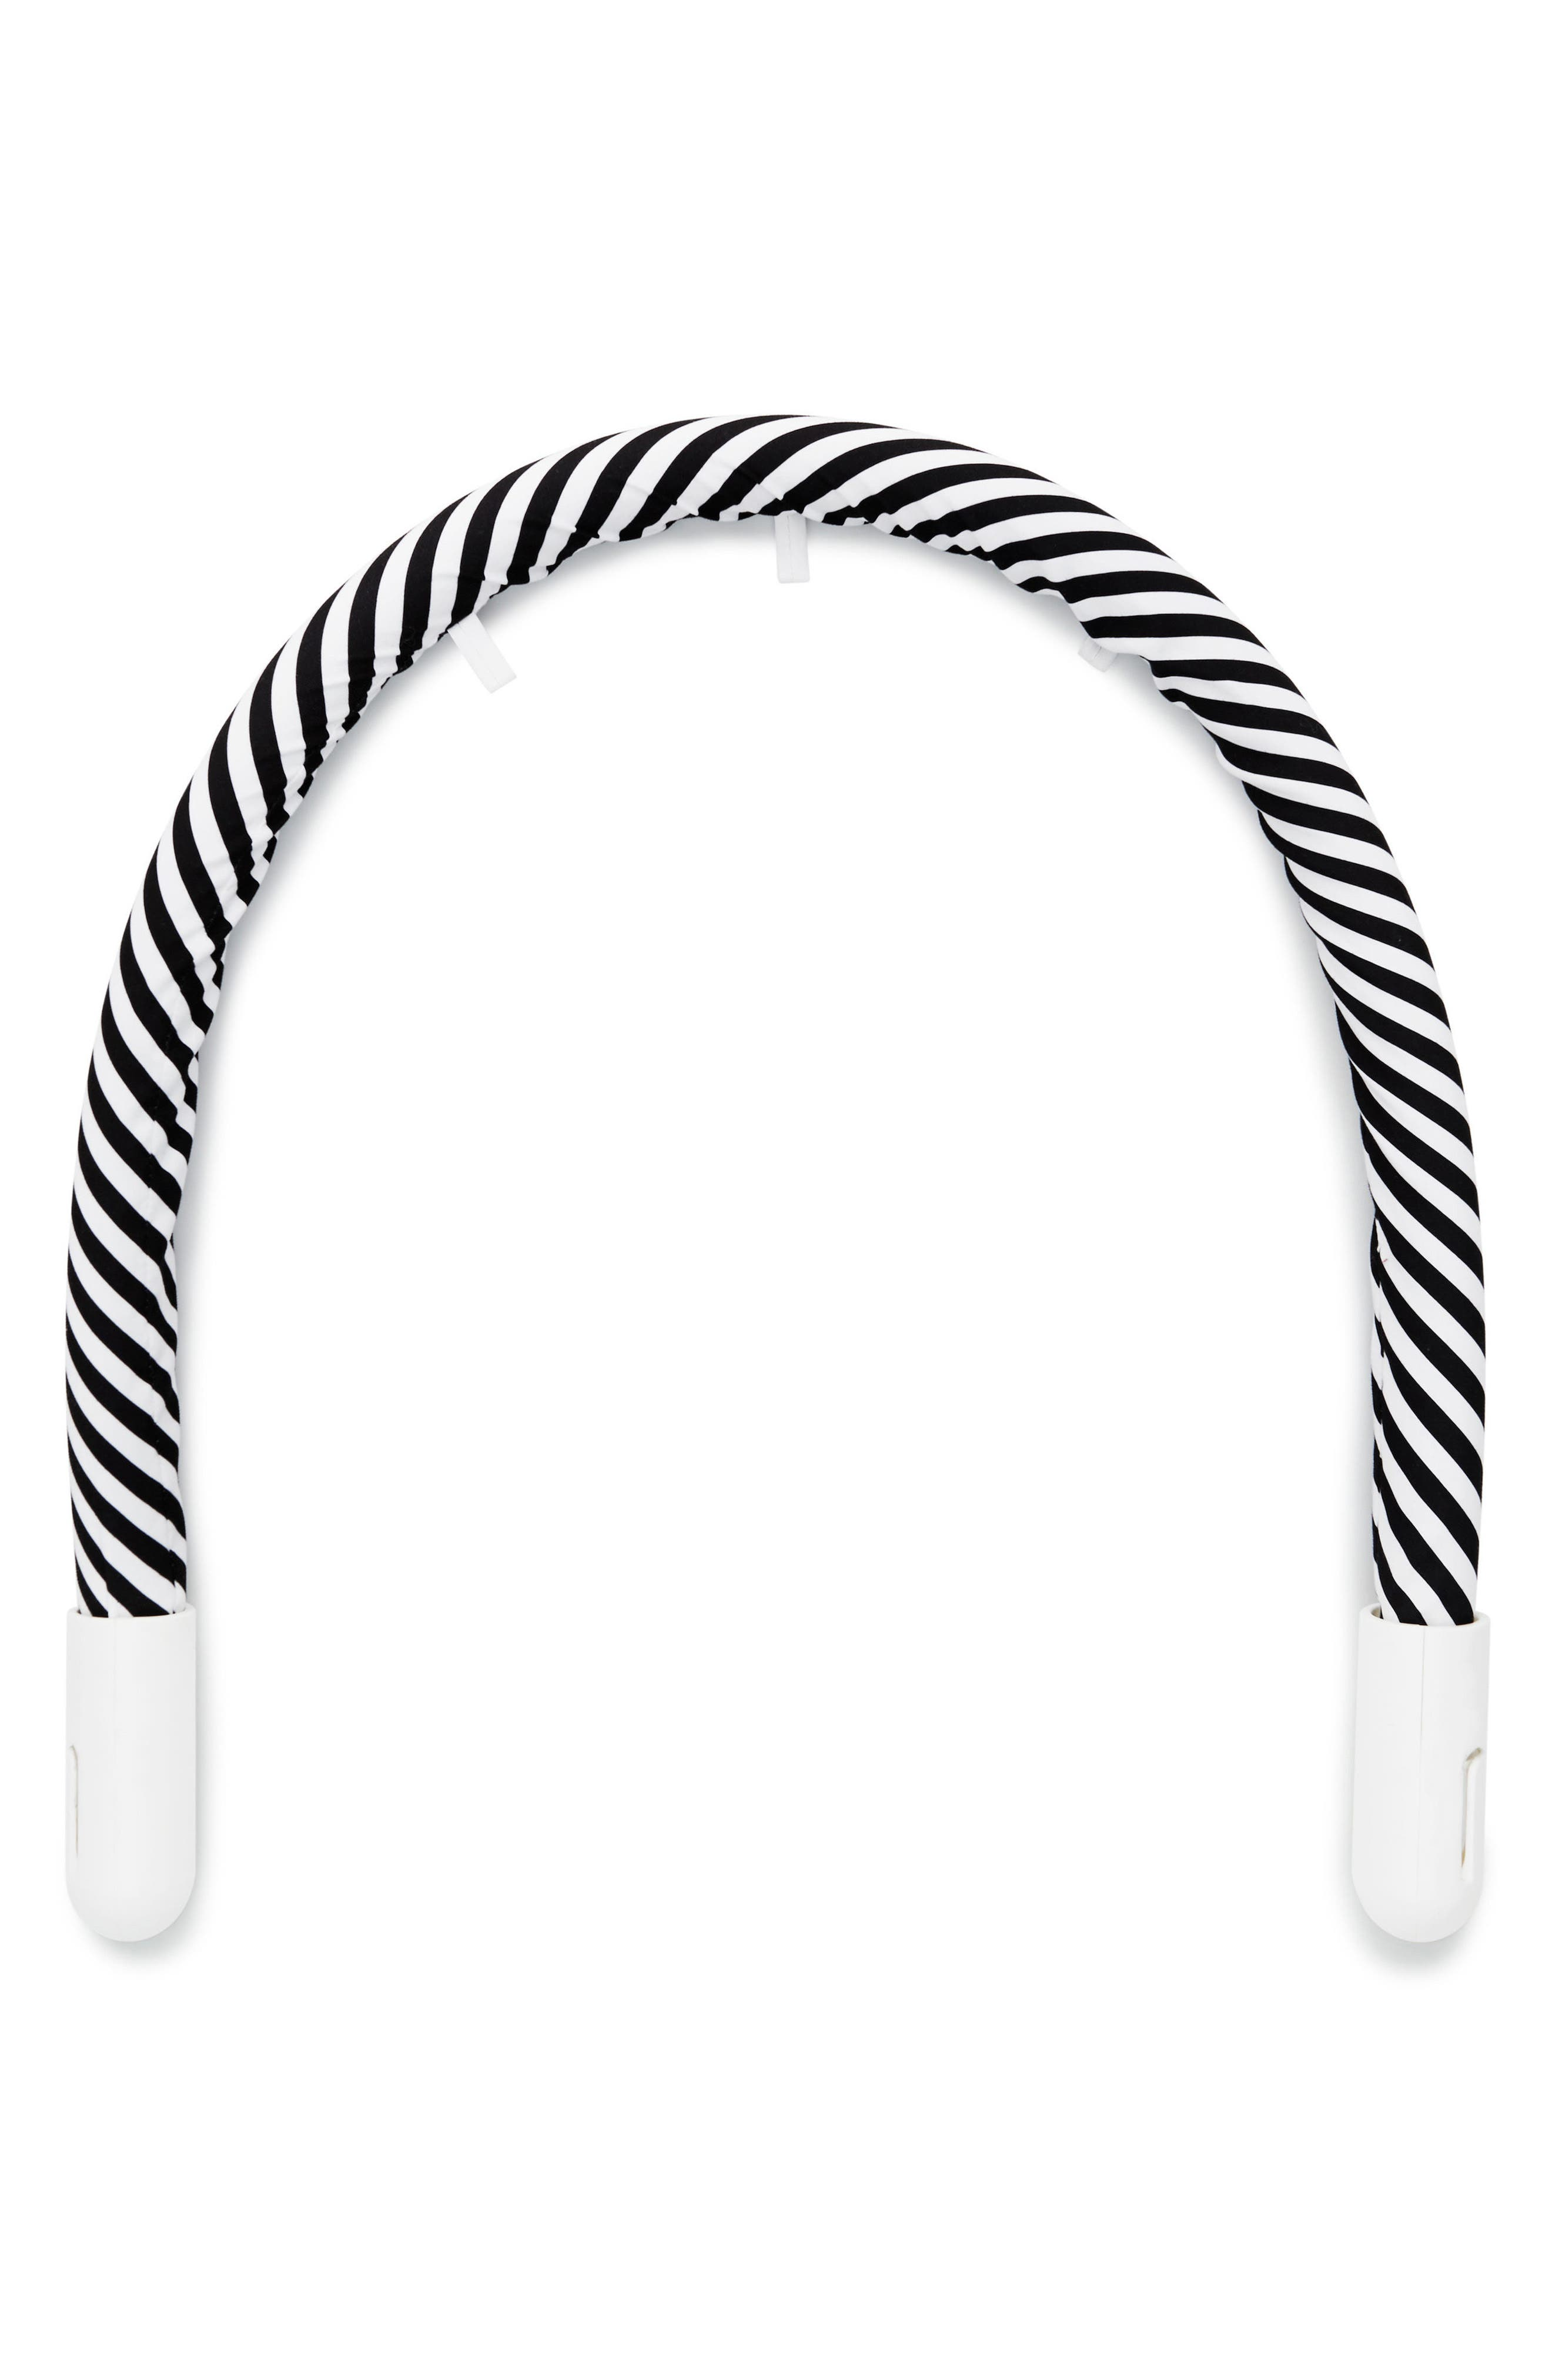 Toy Arch,                         Main,                         color, Black/ White